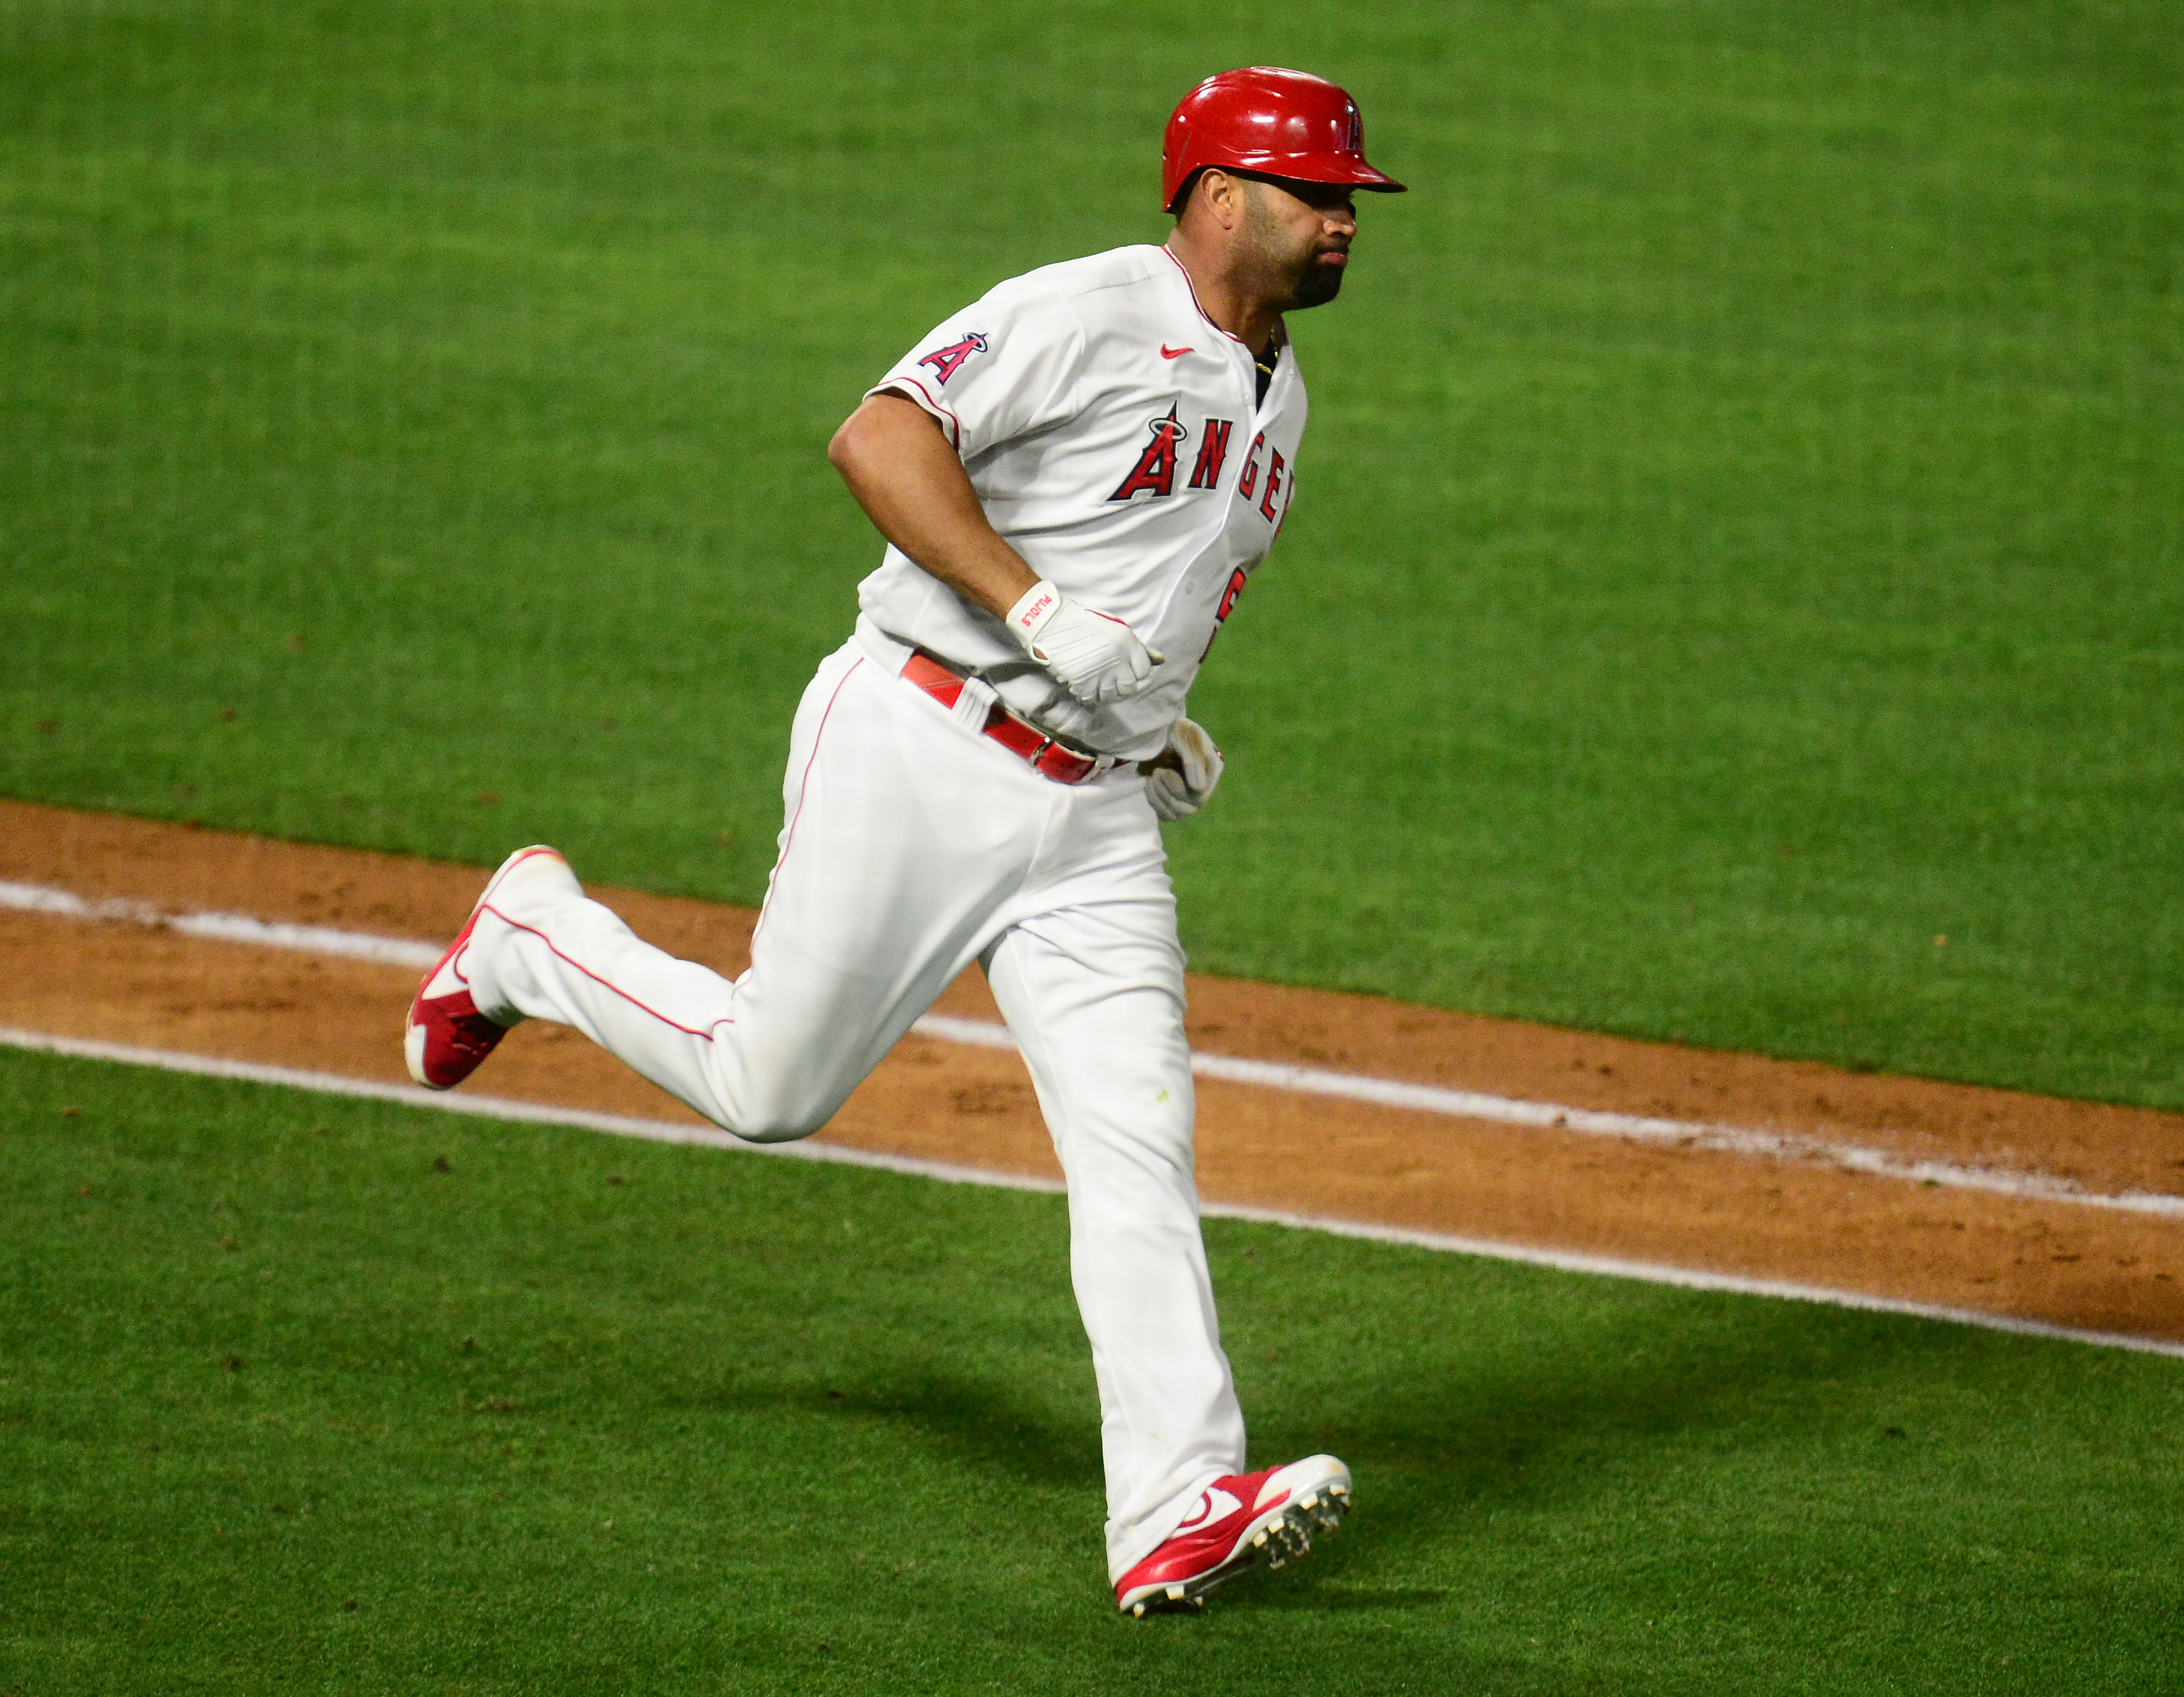 Los Angeles Angels first baseman Albert Pujols runs after hitting a single against the Tampa Bay Rays during the seventh inning at Angel Stadium.